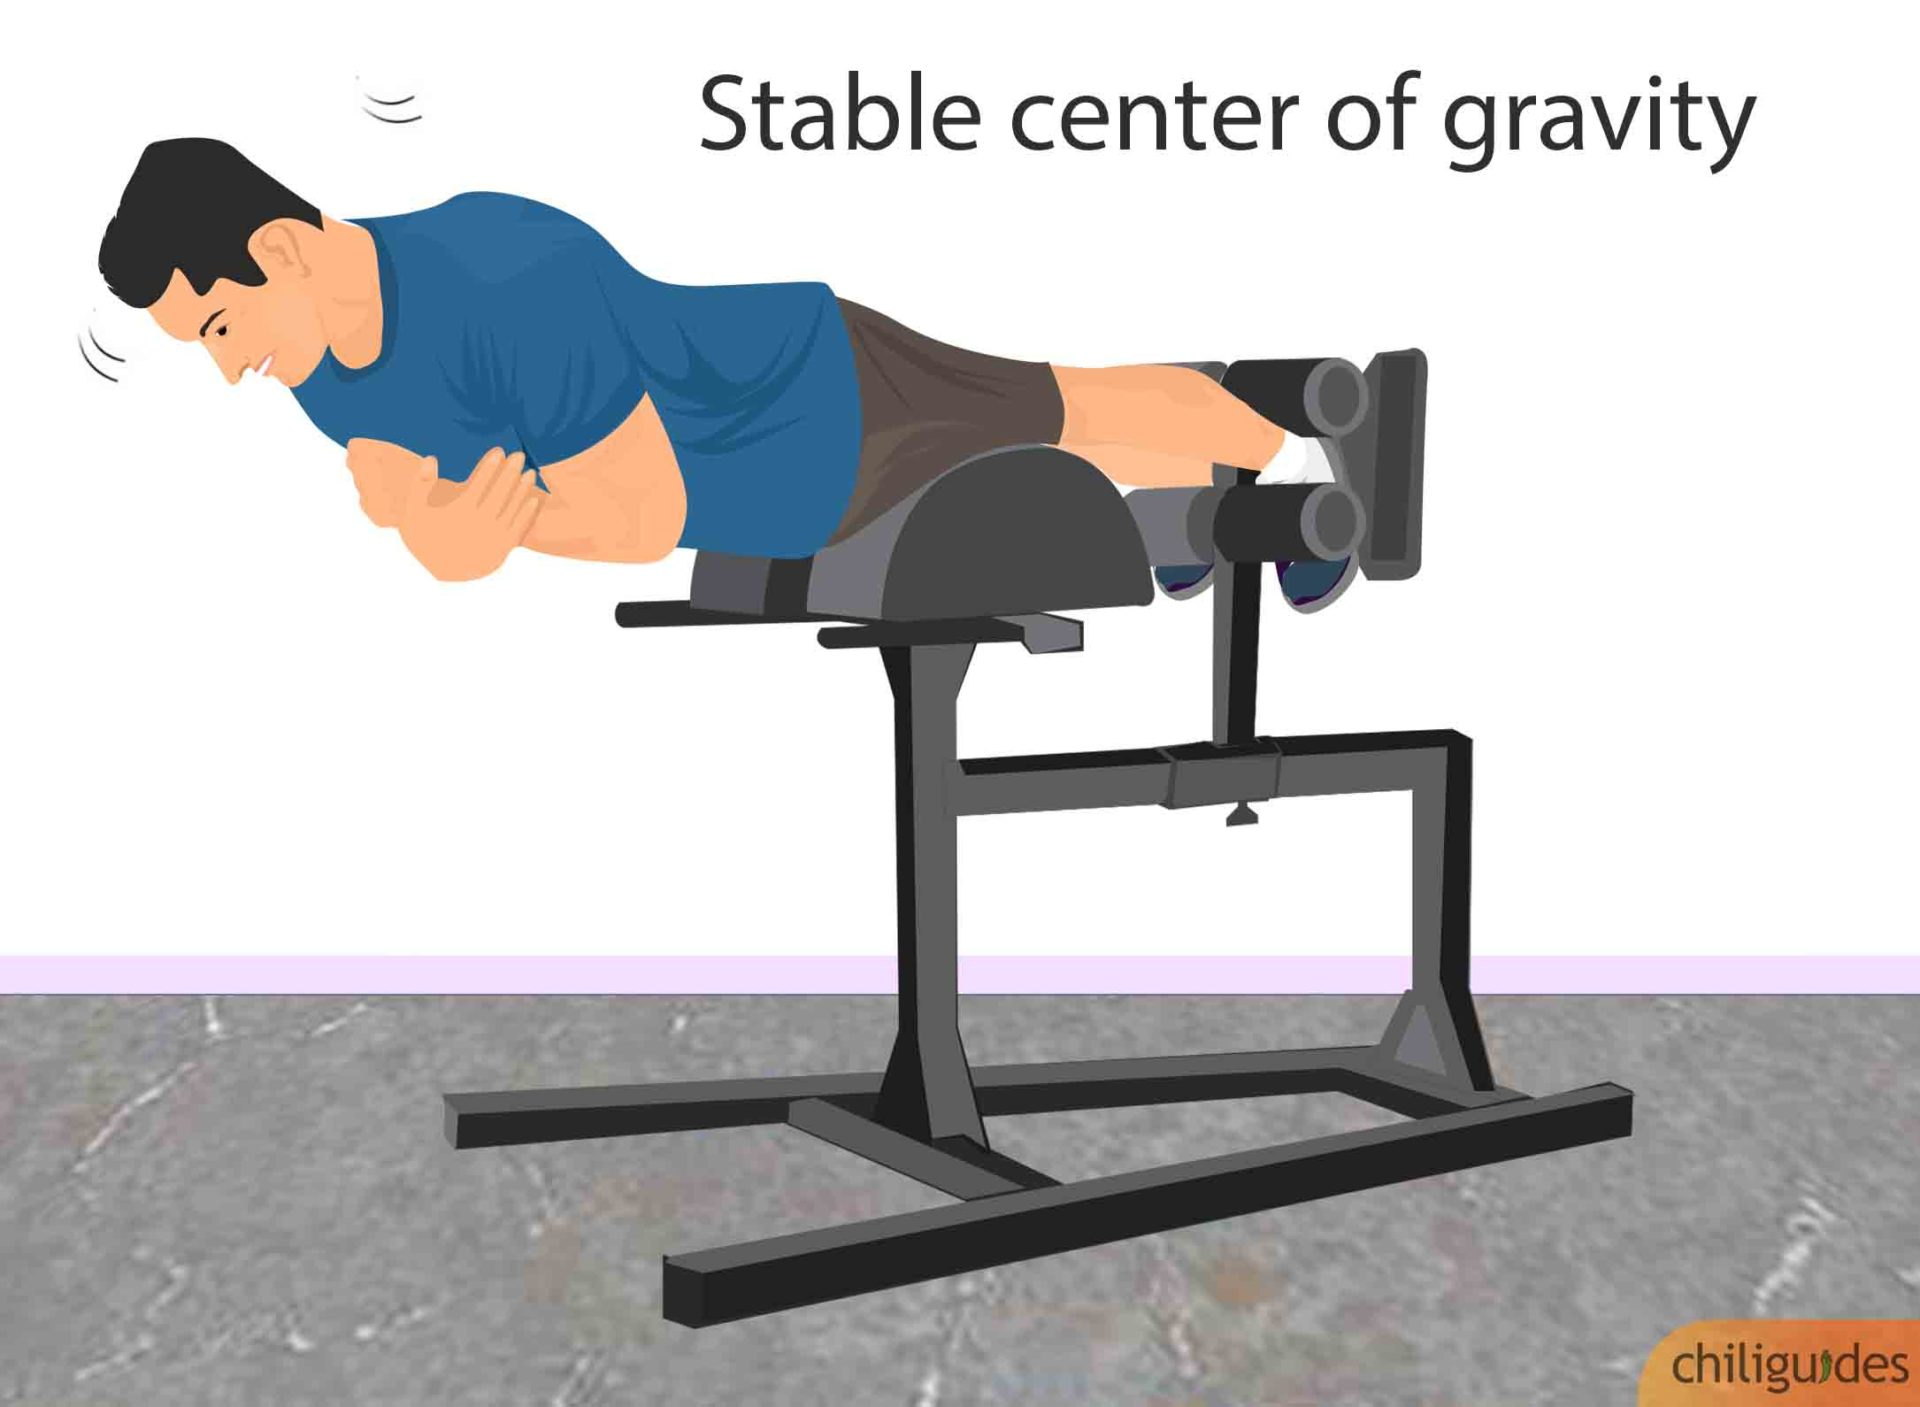 A GHD has to be stable for you to exercise safely.